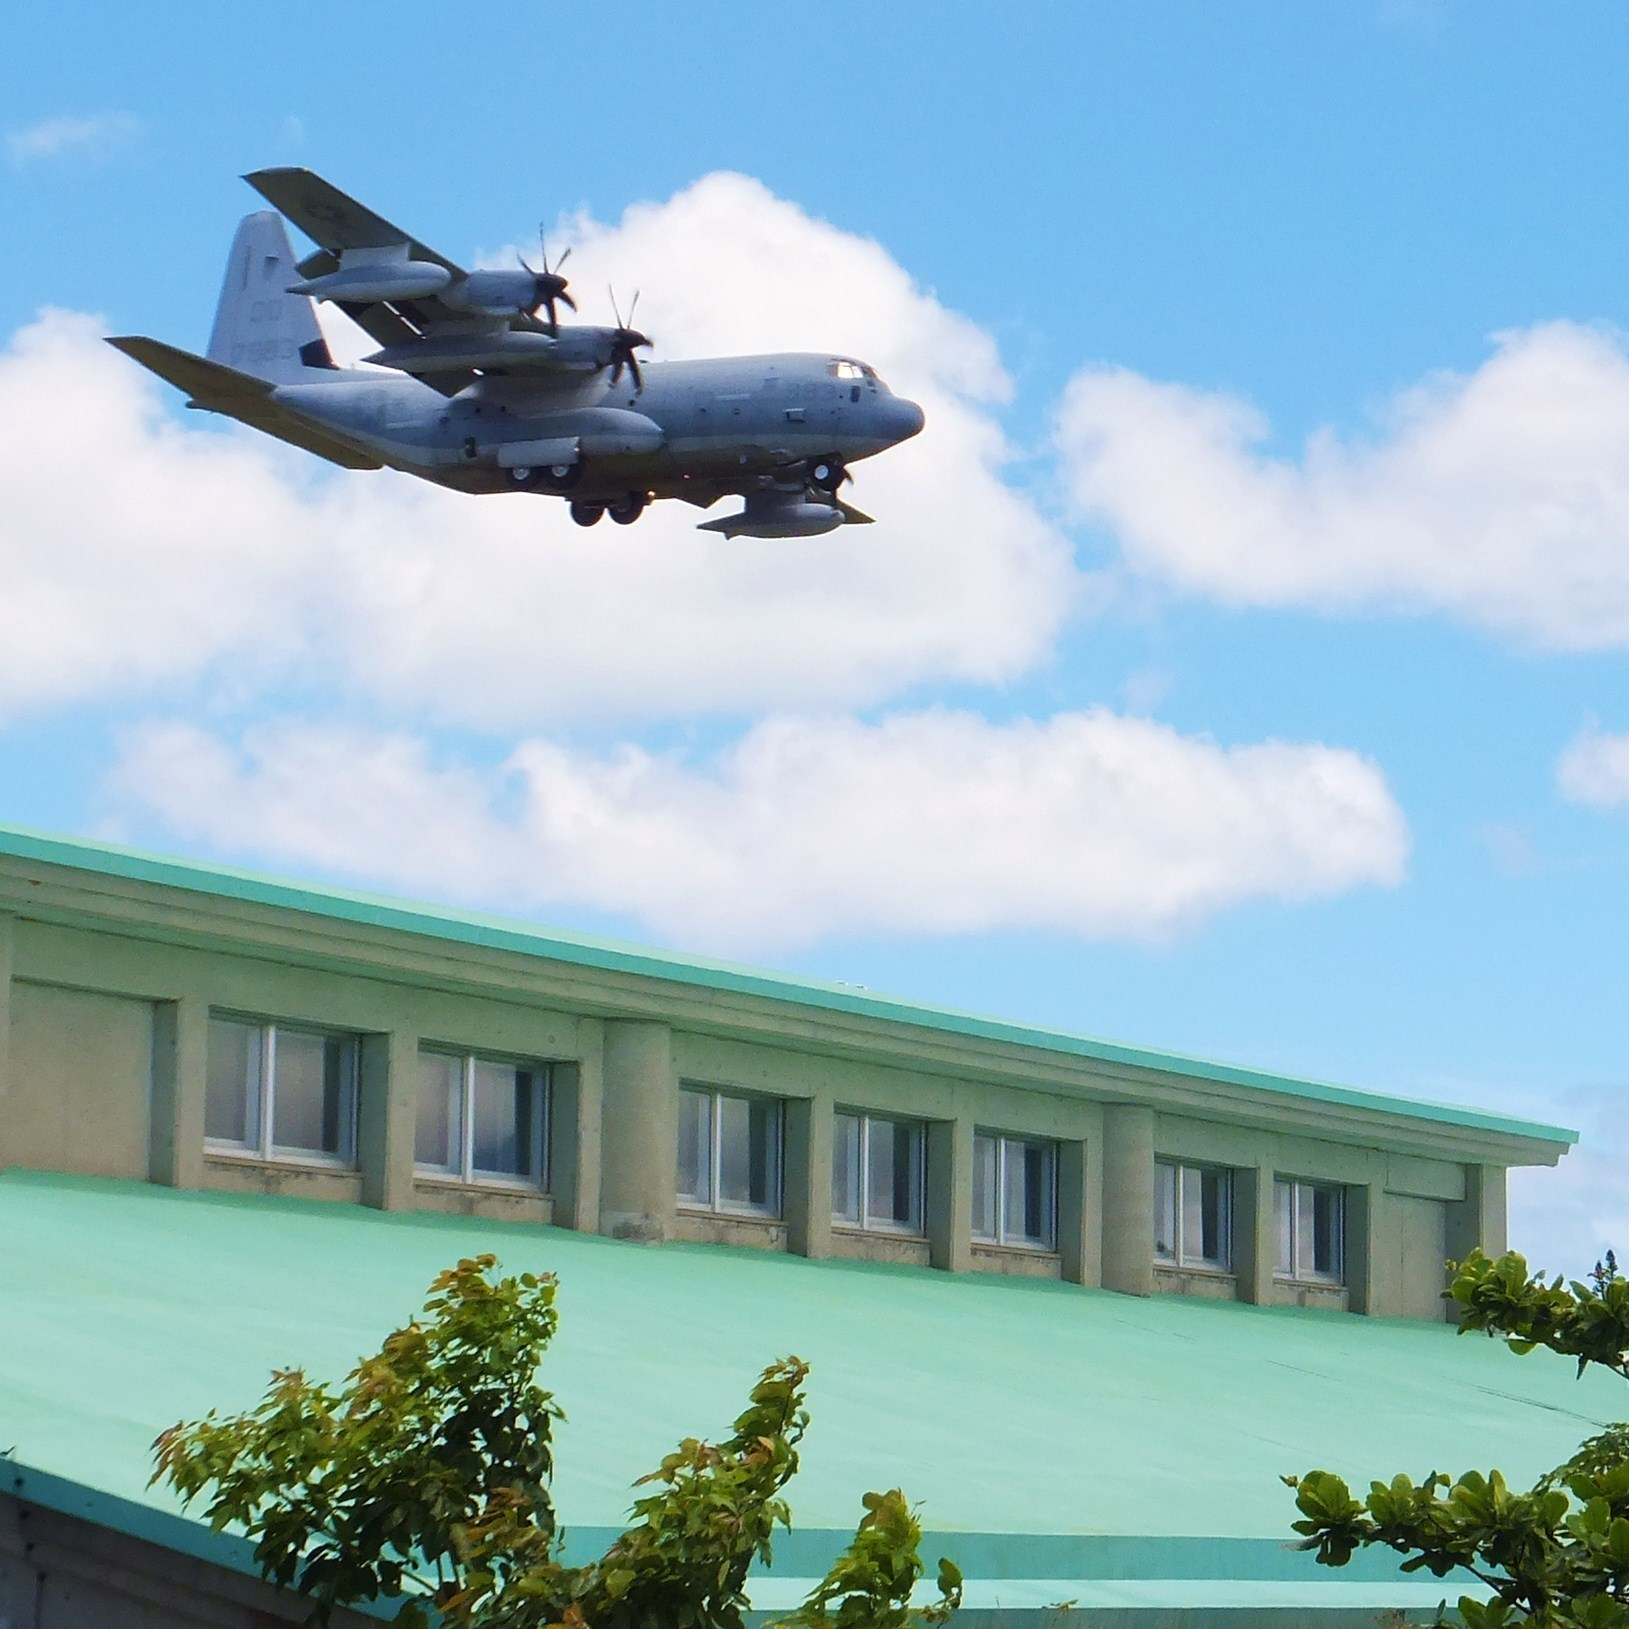 An Osprey flies over the Futenma No. 2 Elementary School in Ginowan city on Japan's southern island of Okinawa. Six Ospreys were deployed in Okinawa, drawing sharp reactions from residents amid persistent concerns about the aircraft's safety.